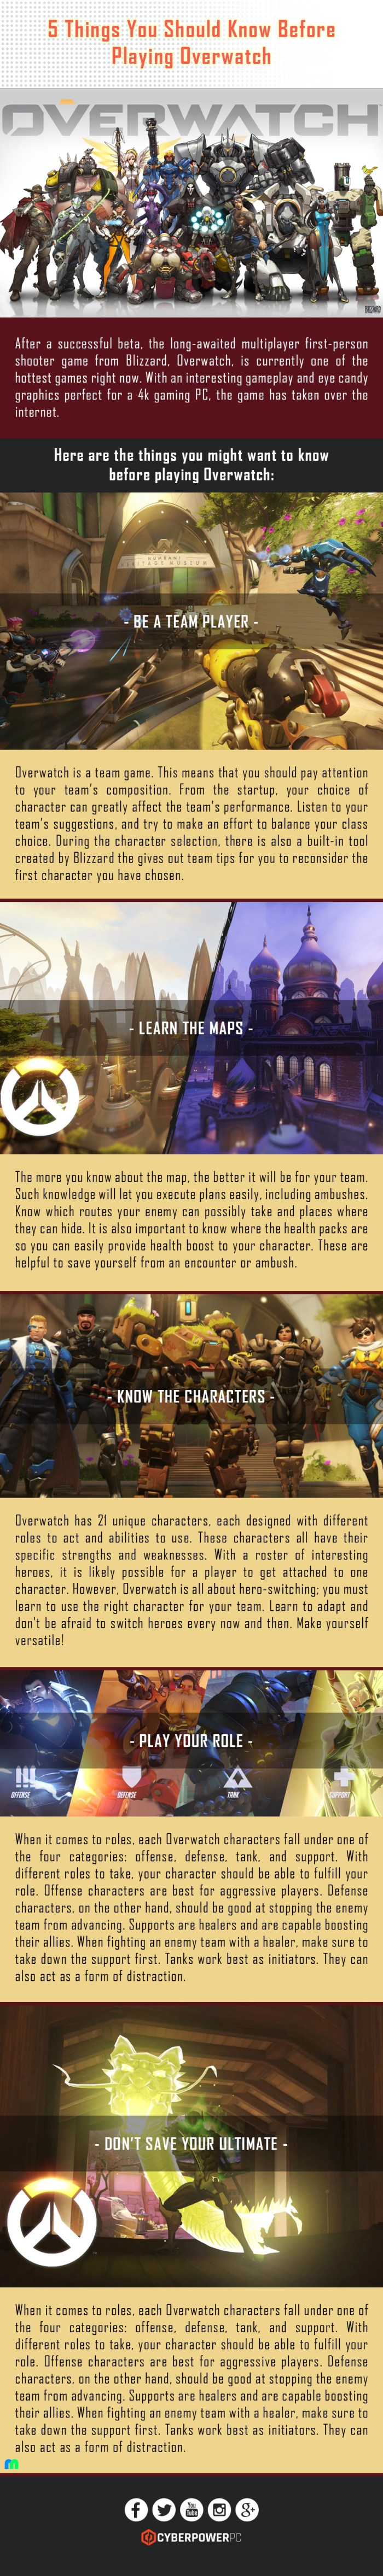 5 Things You Should Know Before Playing Overwatch